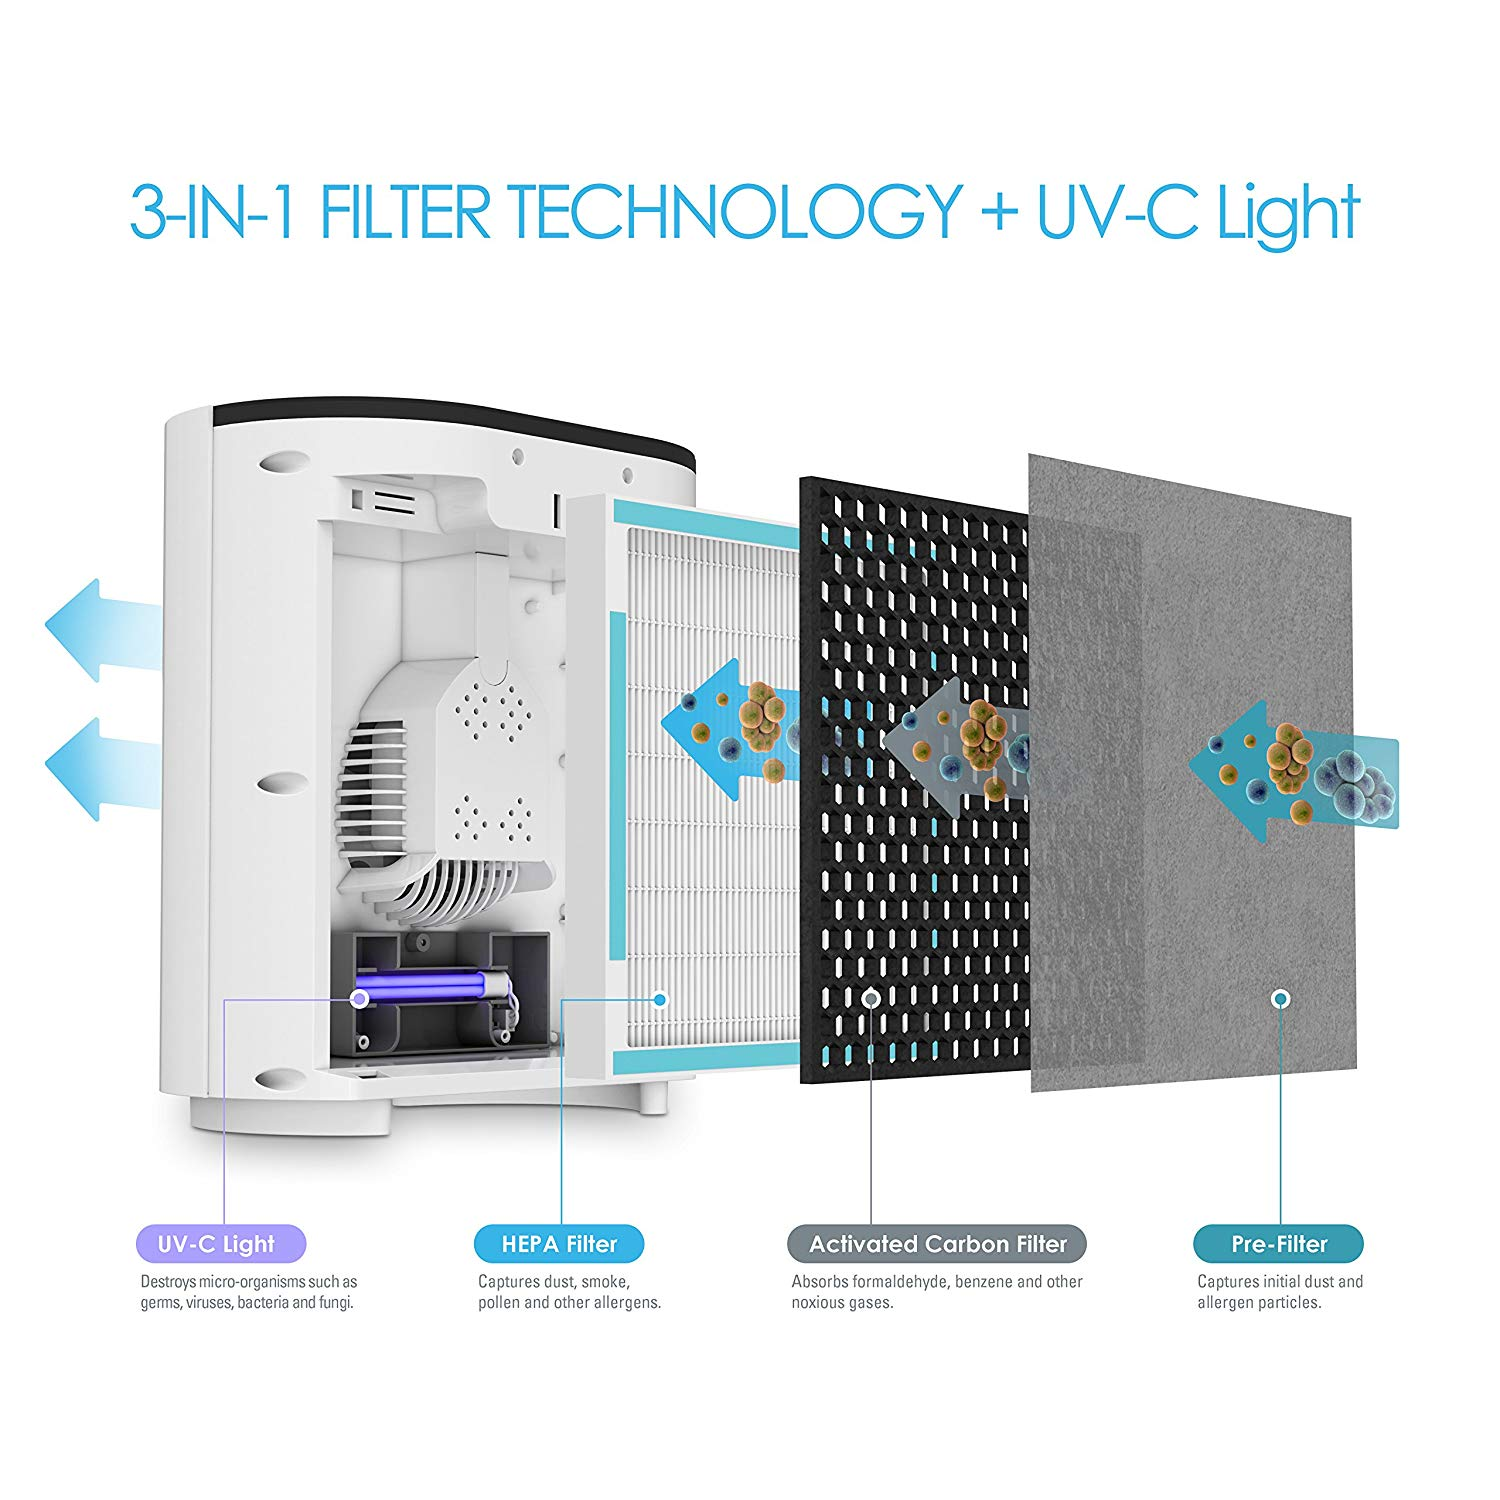 Best Air Purifier for a Baby Nursery - #2 Best Air Purifier for a Baby Under $100 - Purezone 3-in-1 - Filters + UV-C Light diagram